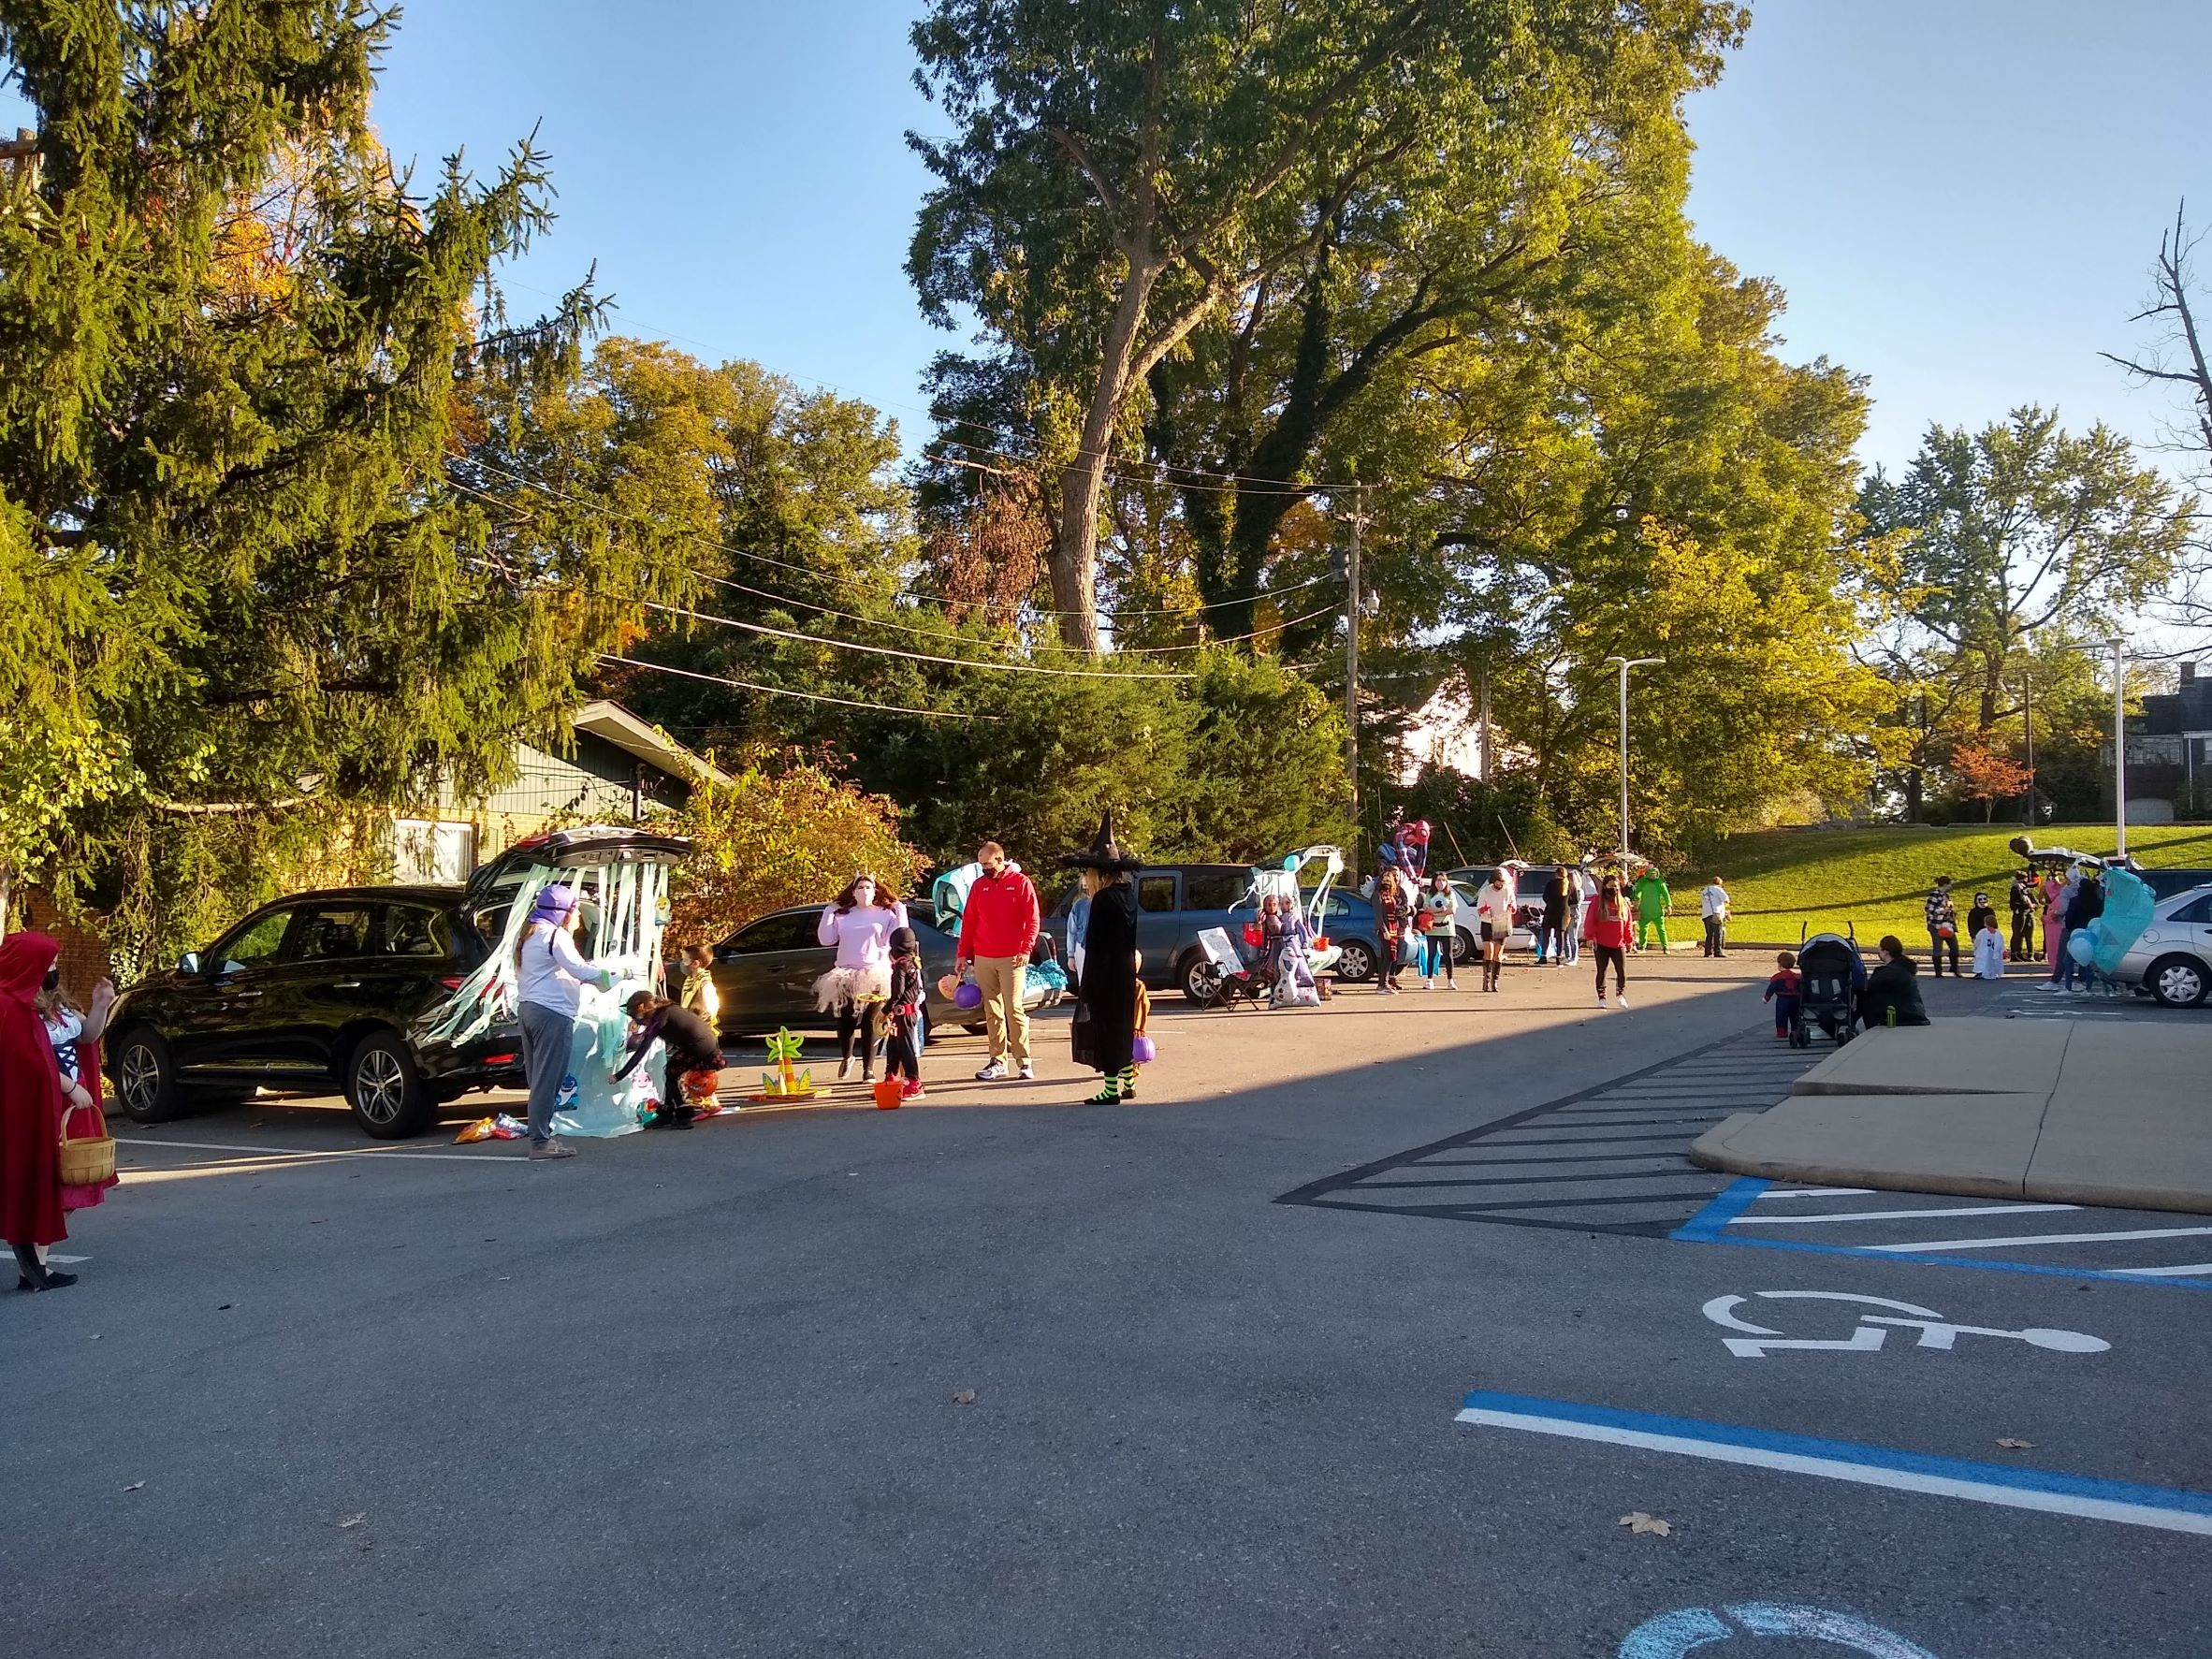 A view of the parking lot with cars decorated for the Trunk or Treat